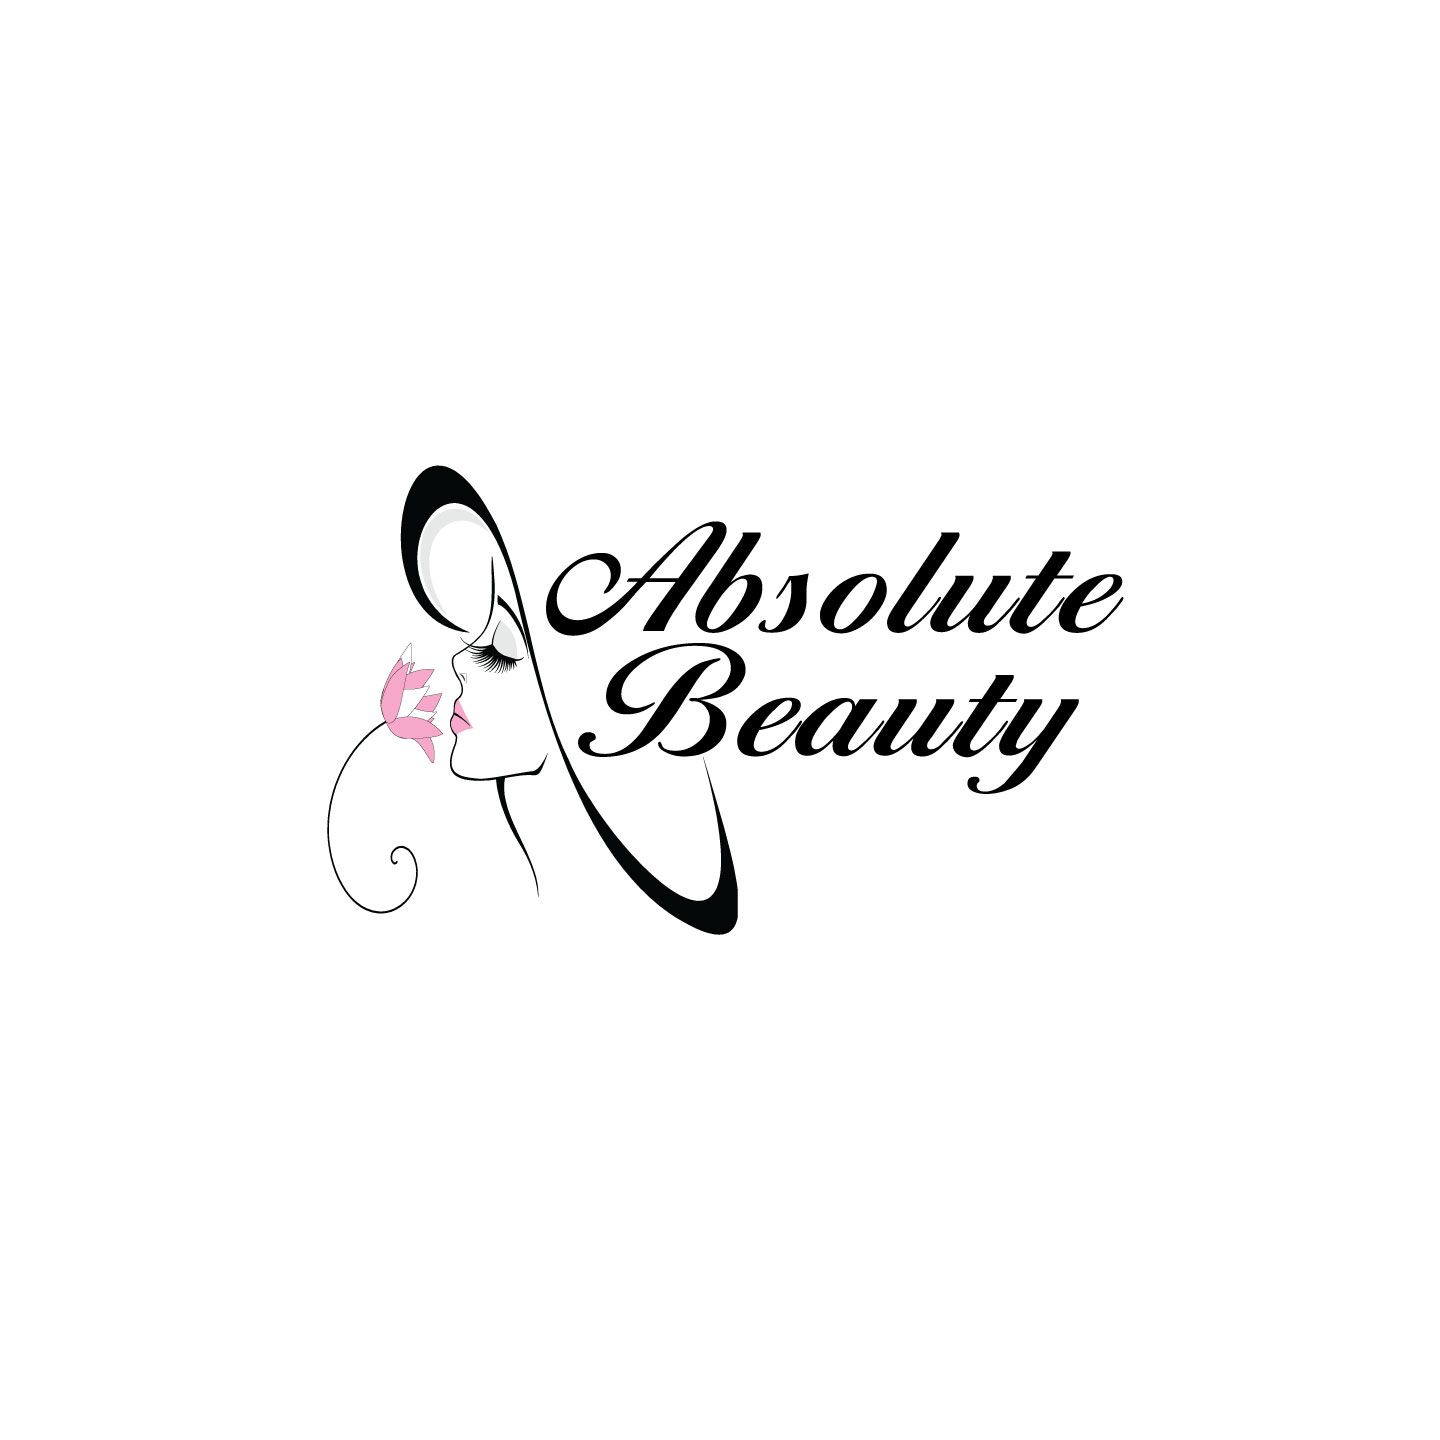 Logo Design For Absolute Beauty By Kentz